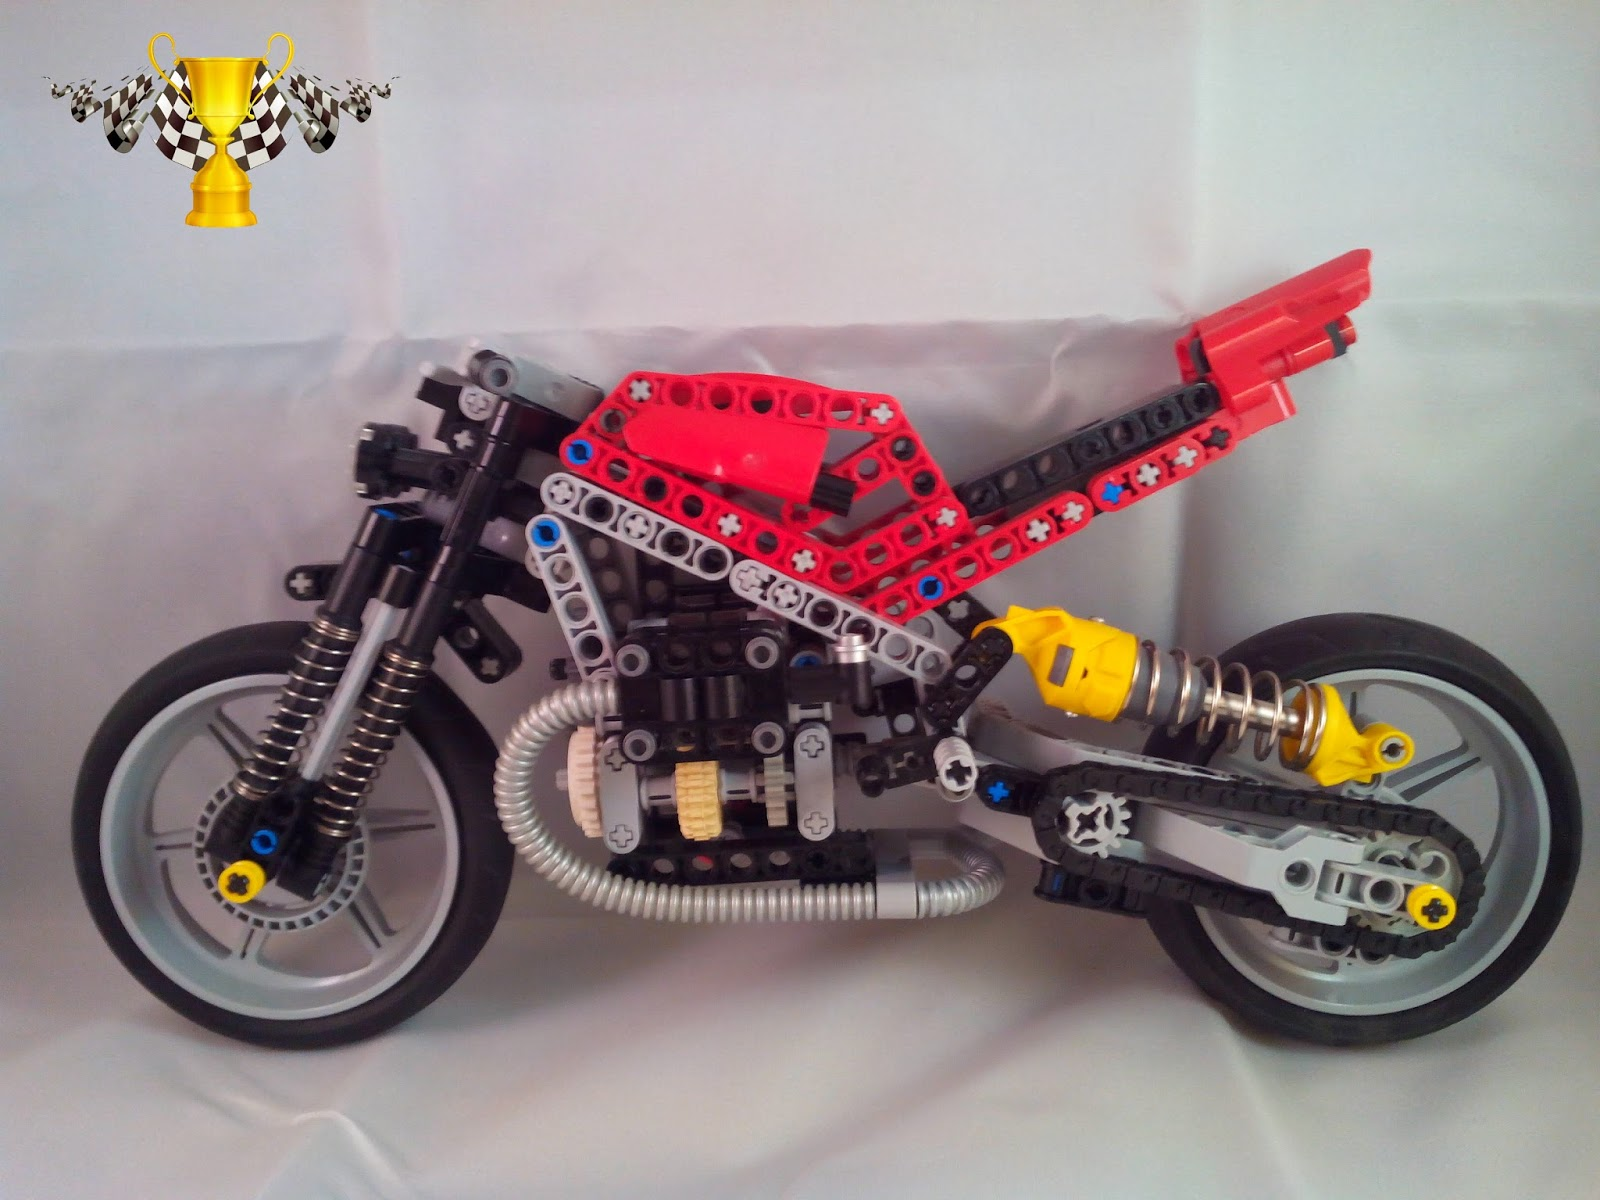 Moc Lego Technic Harley Davidson Bobber furthermore Moc Lego Technic Mv Agusta 750 Gp additionally 2016 Yamaha Yzf R6 Concept further Small And Rare Sport Bikes further 544706309. on yamaha tz 750